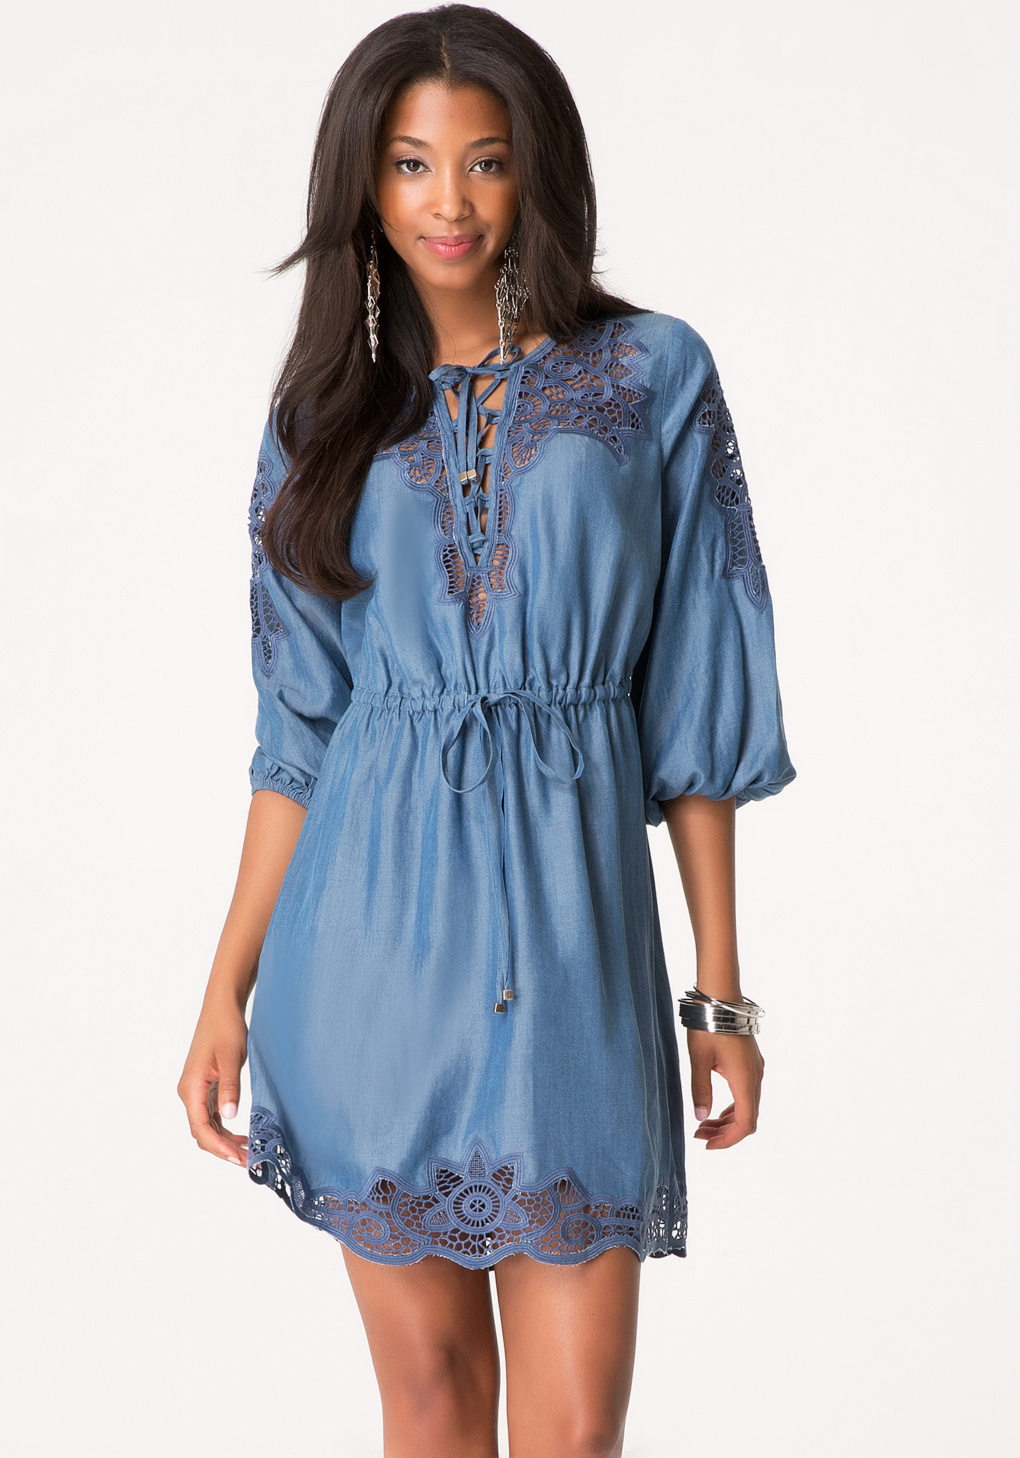 5536a3e7dbf6 Lyst - Bebe Embroidered Chambray Dress in Blue